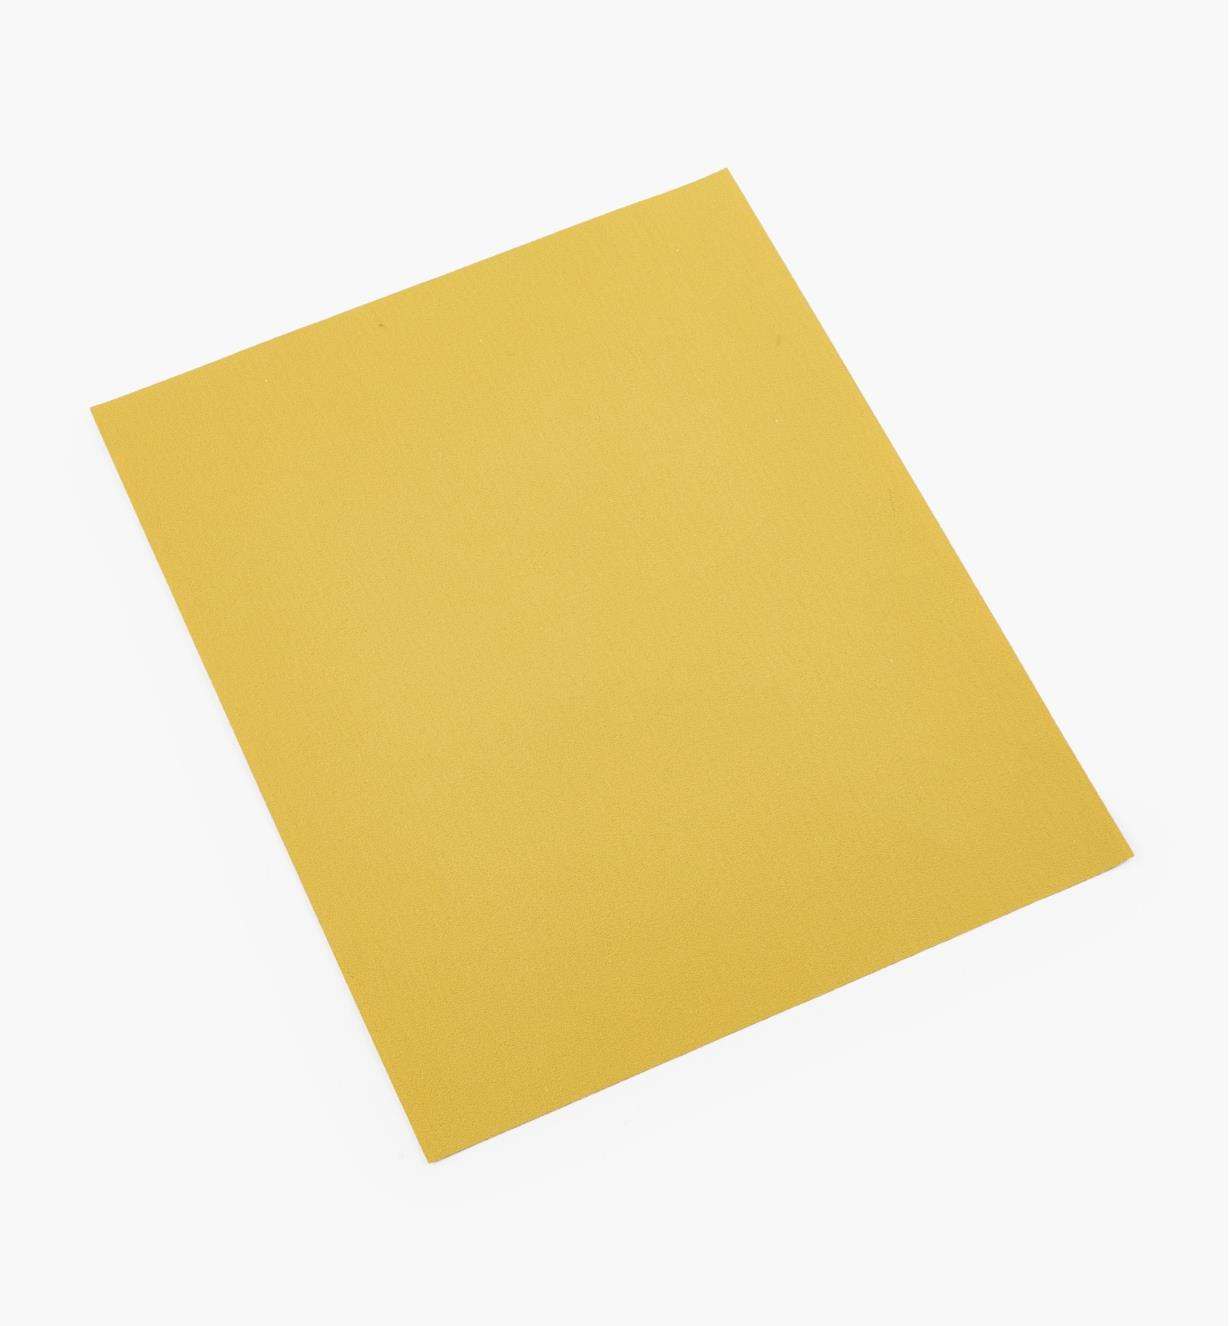 54K8204 - 3M No-Load Sandpaper, 150x